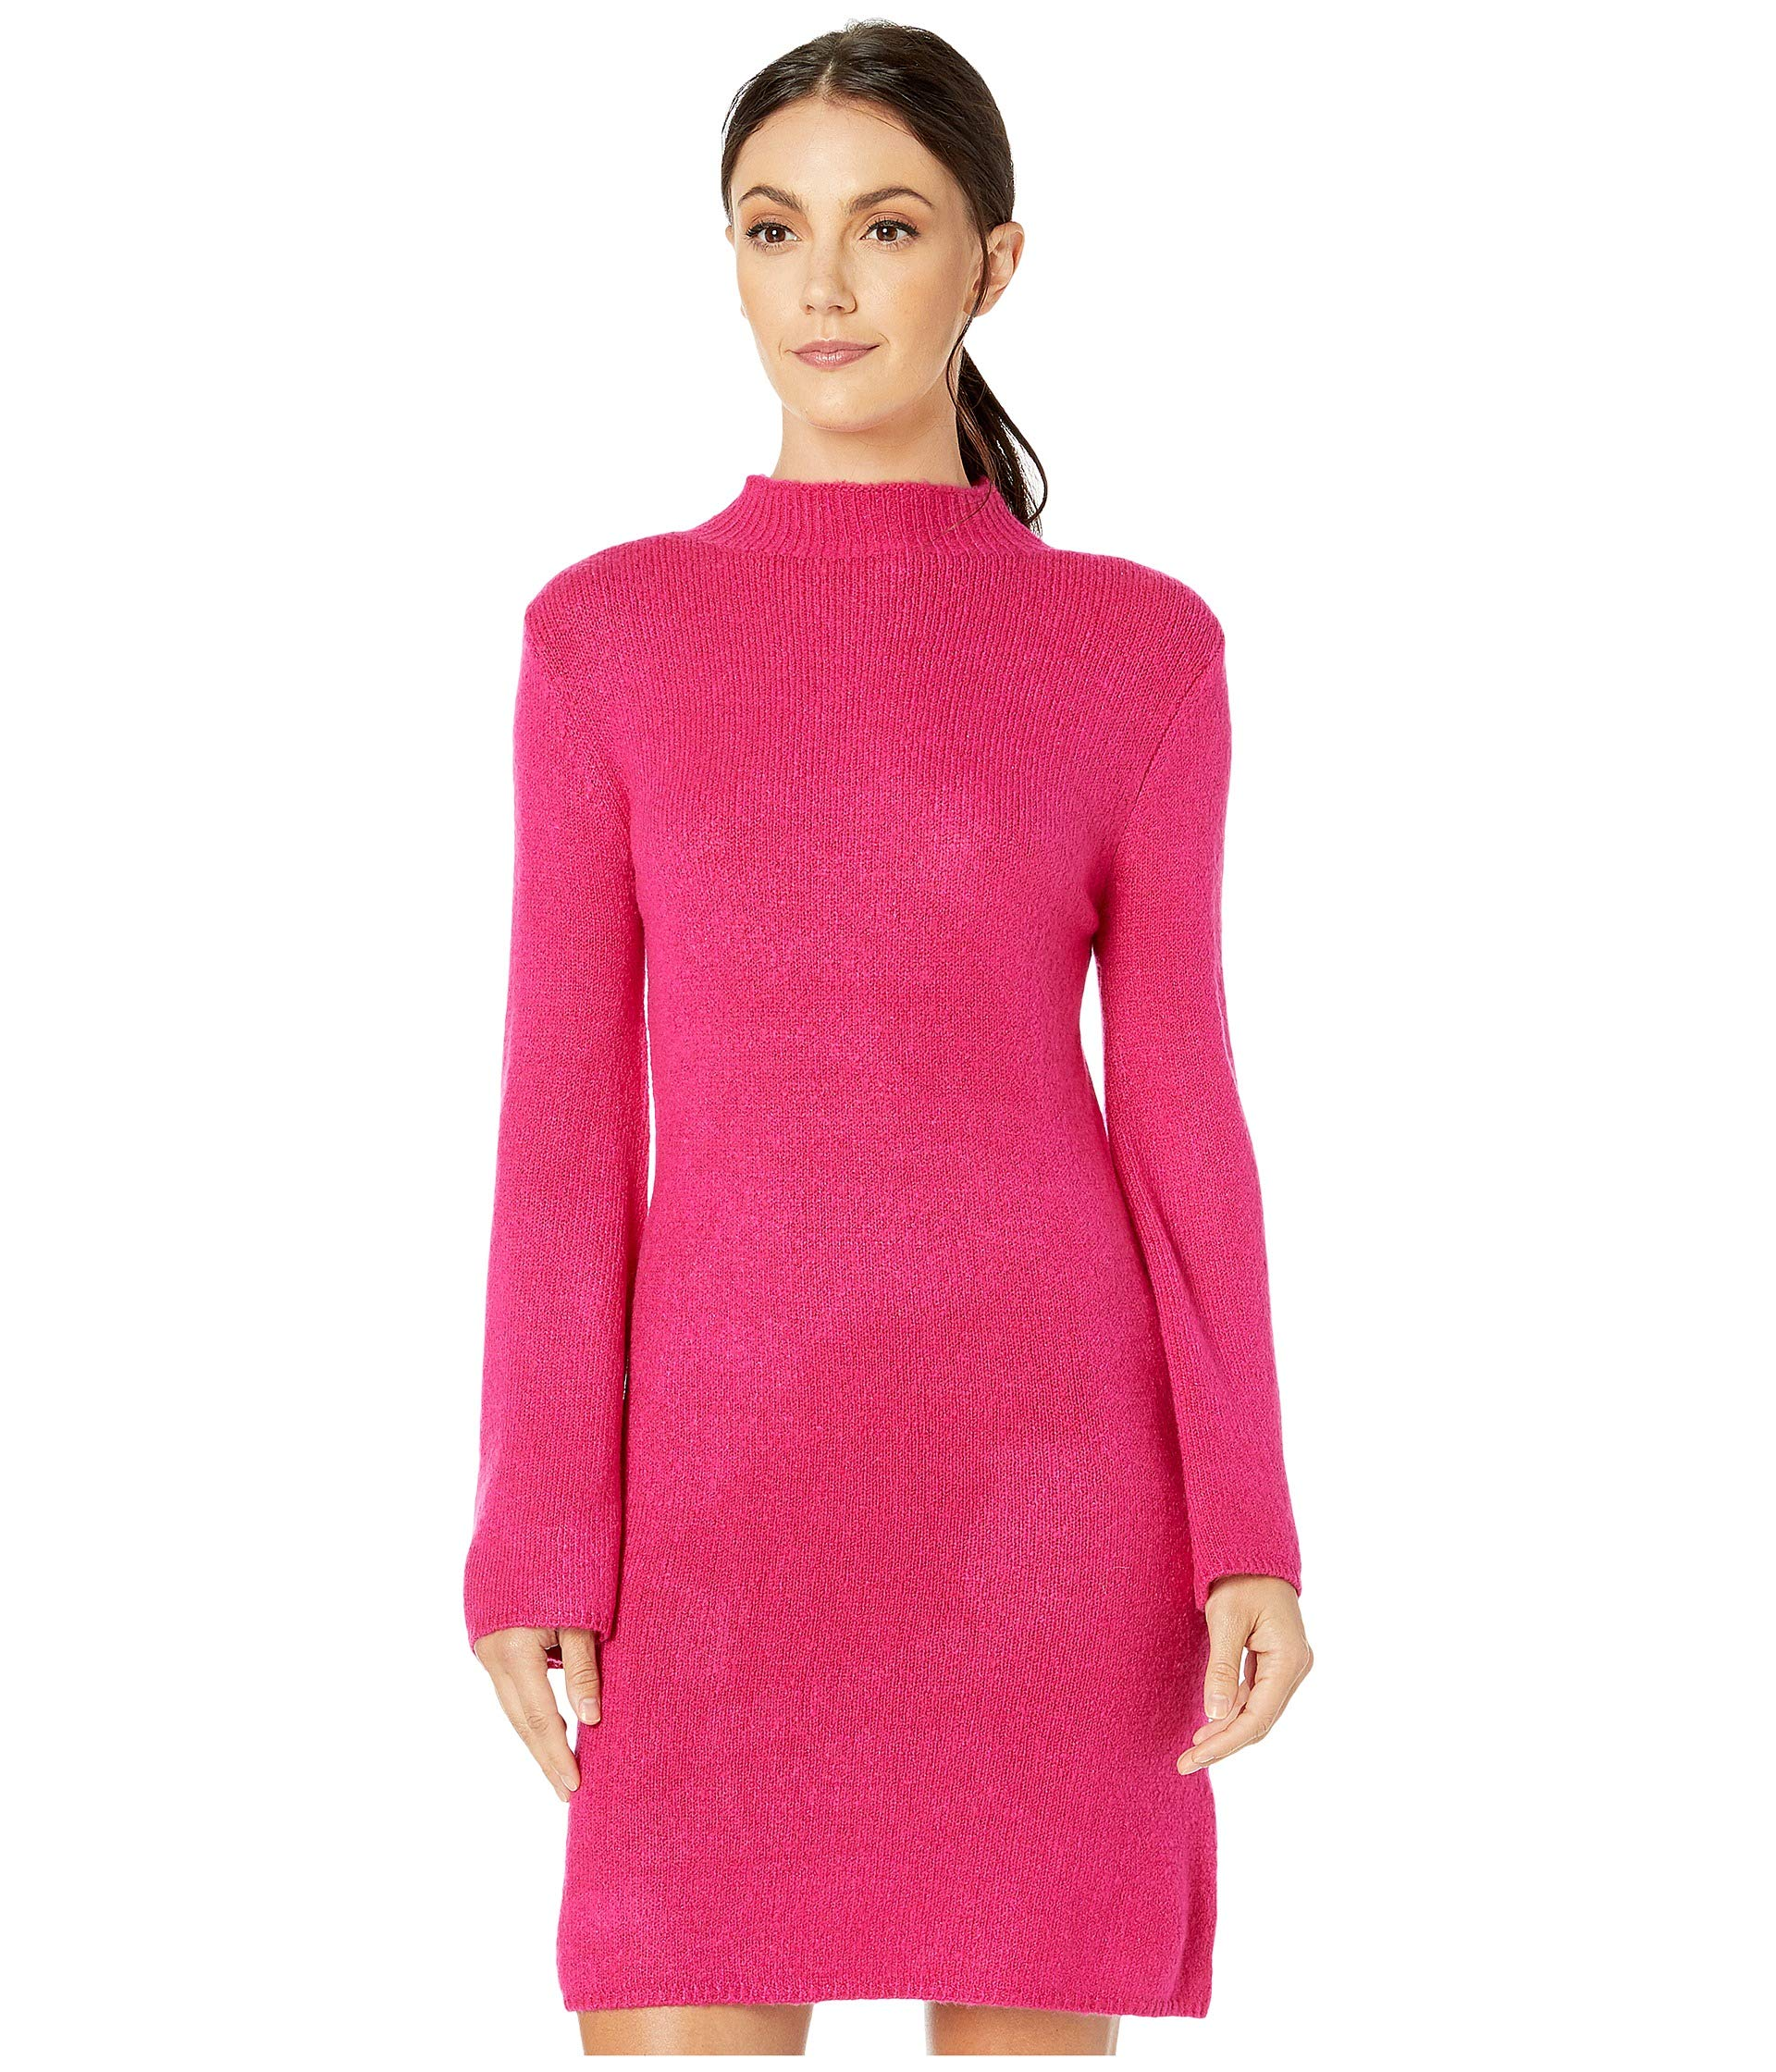 Best Turtleneck Sweater Dresses To Buy This Winter 2020